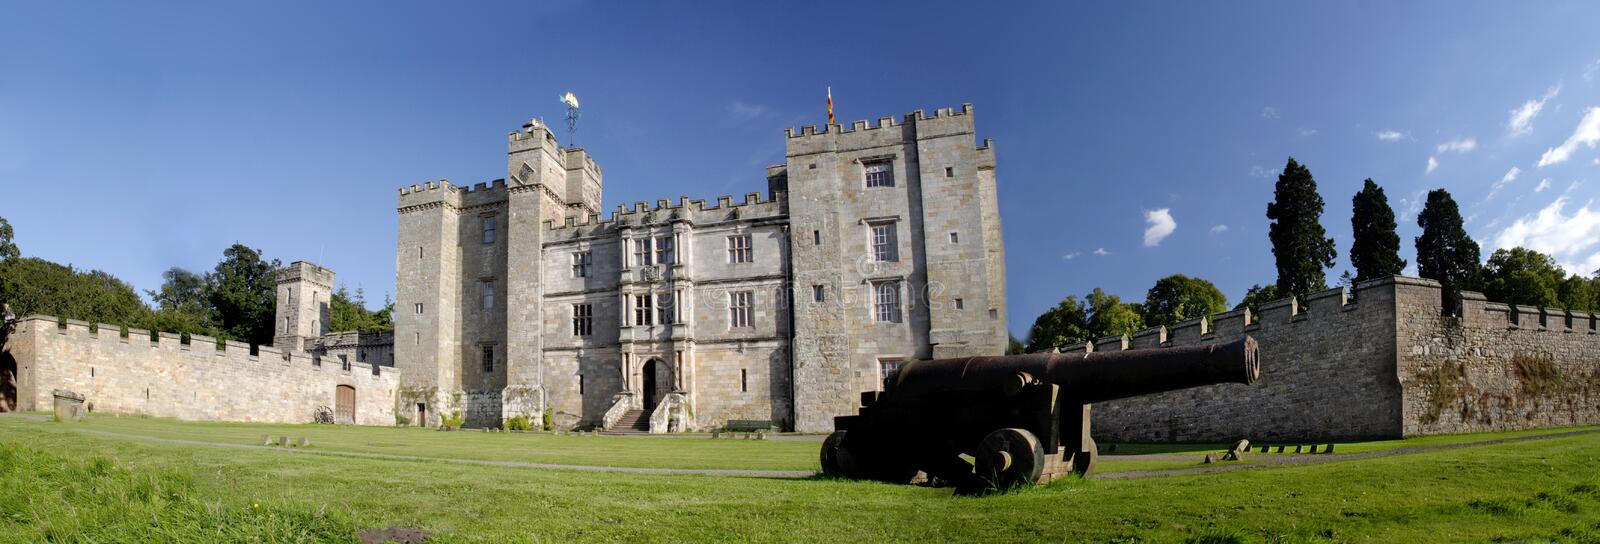 Download Chillingham Castle stock image. Image of most, canon, turrets - 2958393